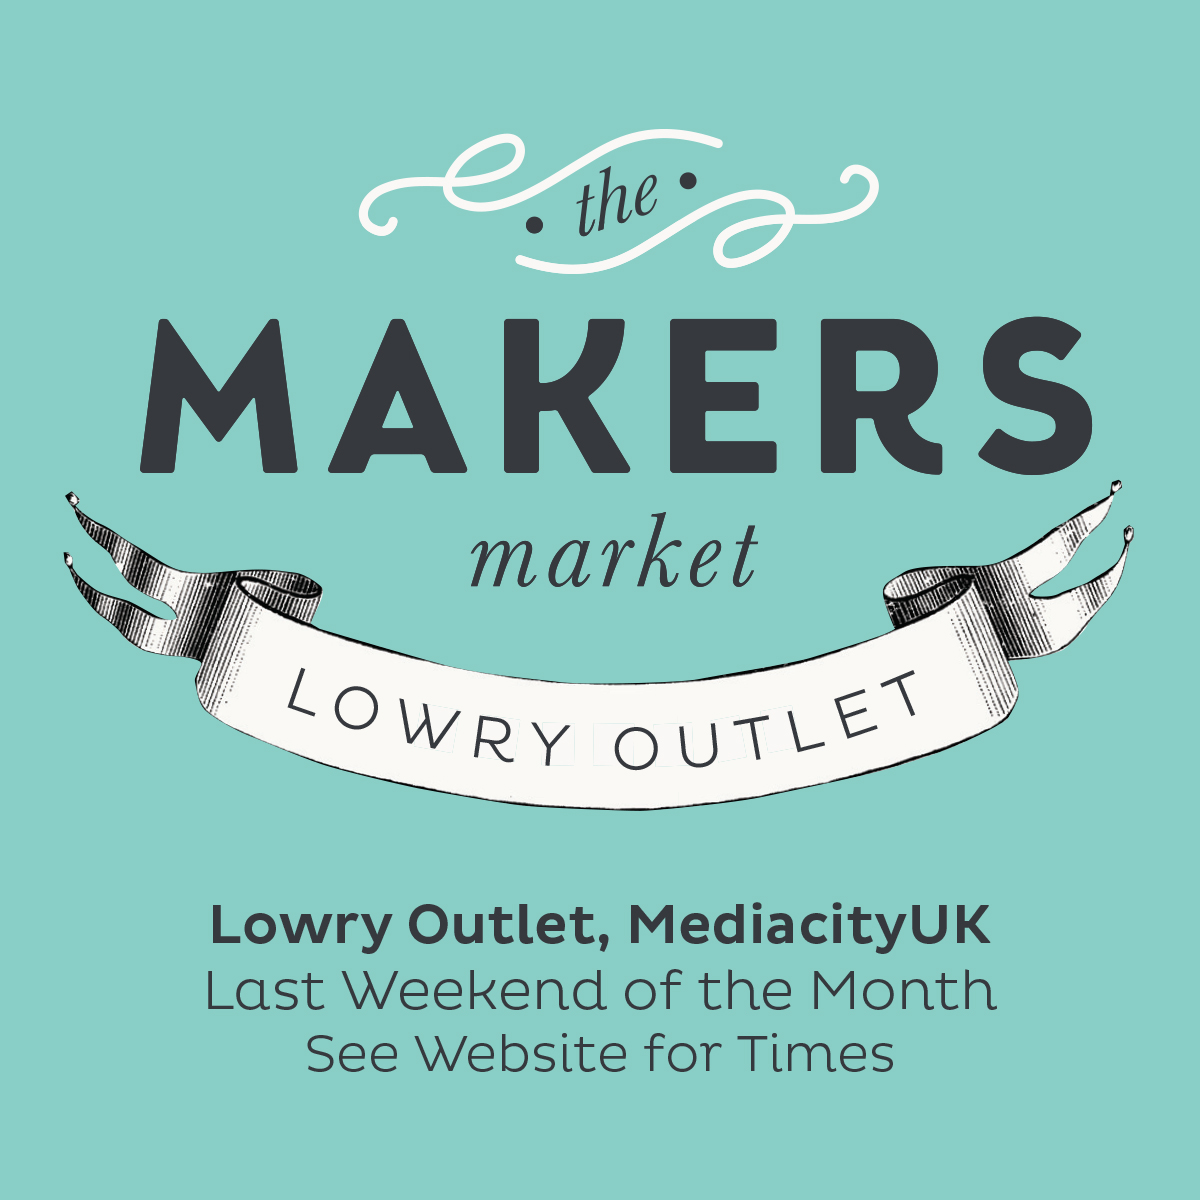 The Makers Market at Lowry Outlet